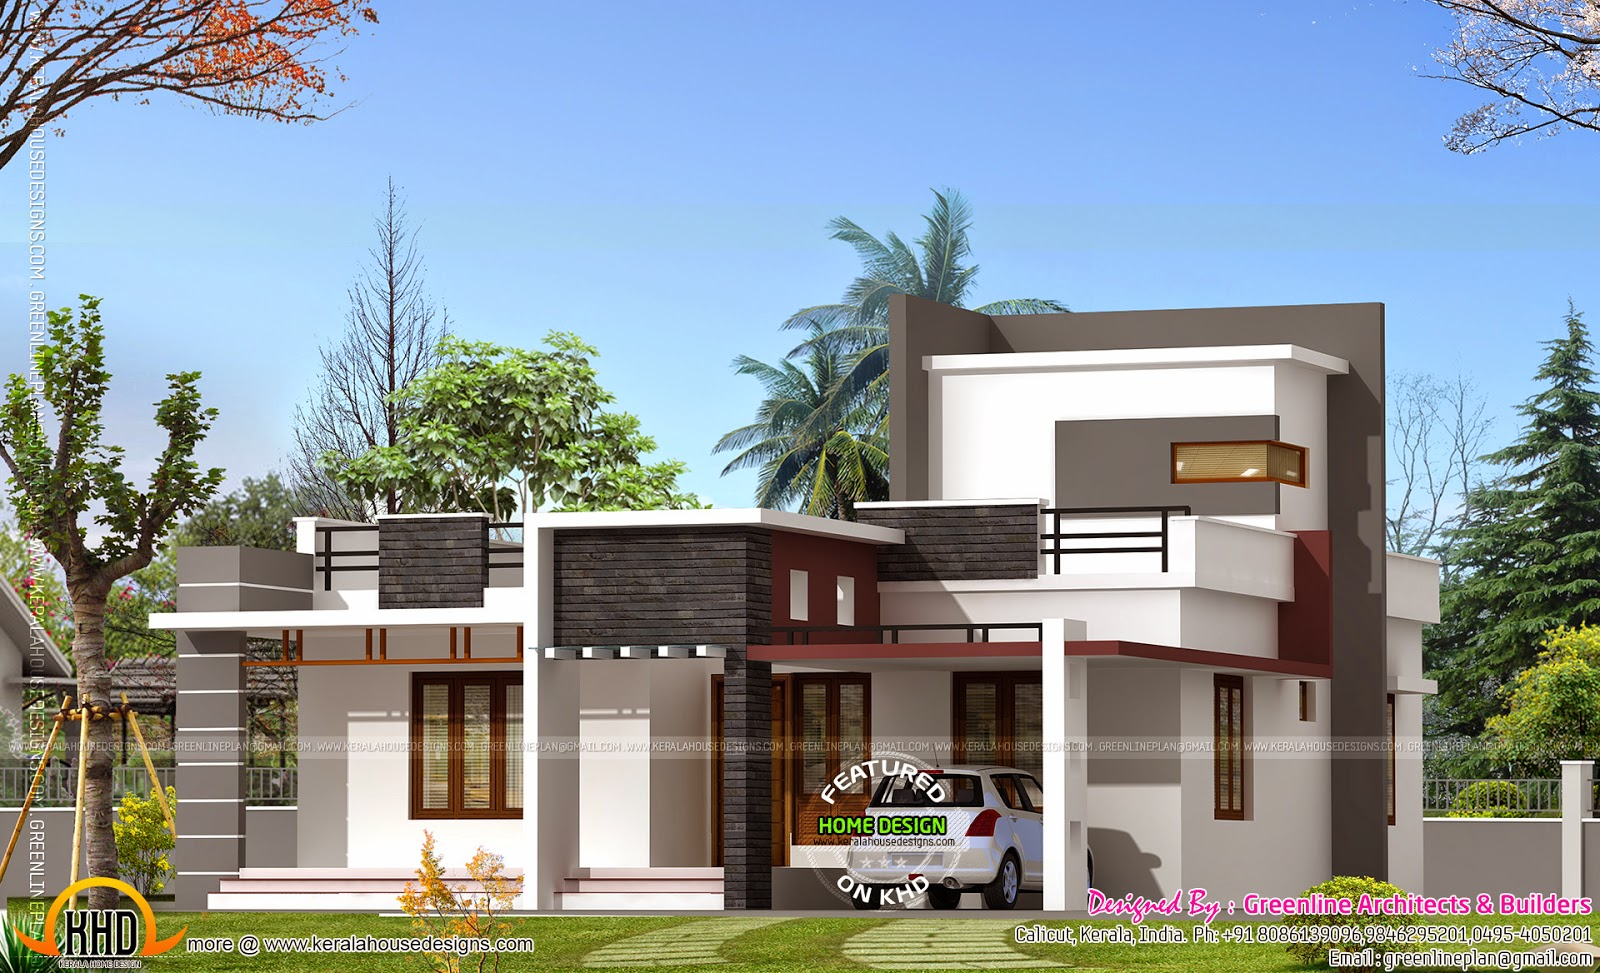 1000 square feet house kerala home design and floor plans for 1000 sq ft house plans 2 bedroom indian style